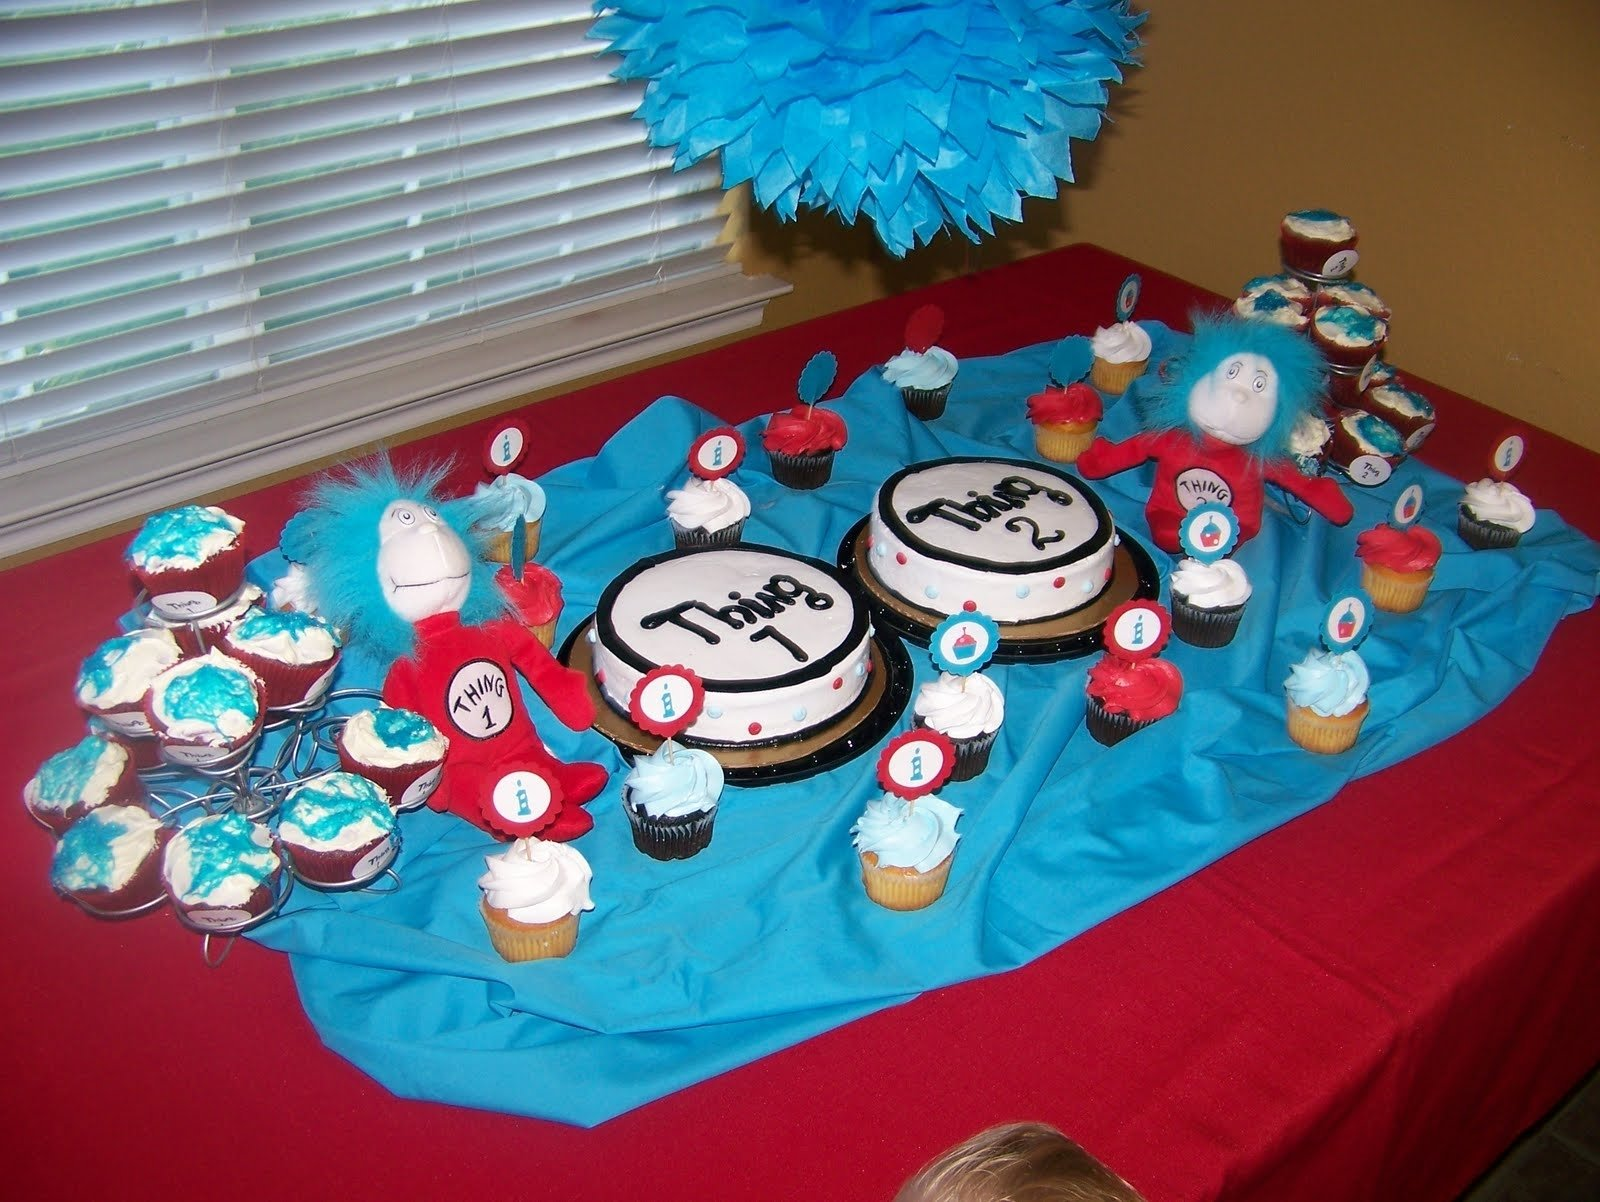 10 Lovely Thing 1 And Thing 2 Birthday Party Ideas dr seuss thing 1 thing 2 birthday party giggles galore 2 2020